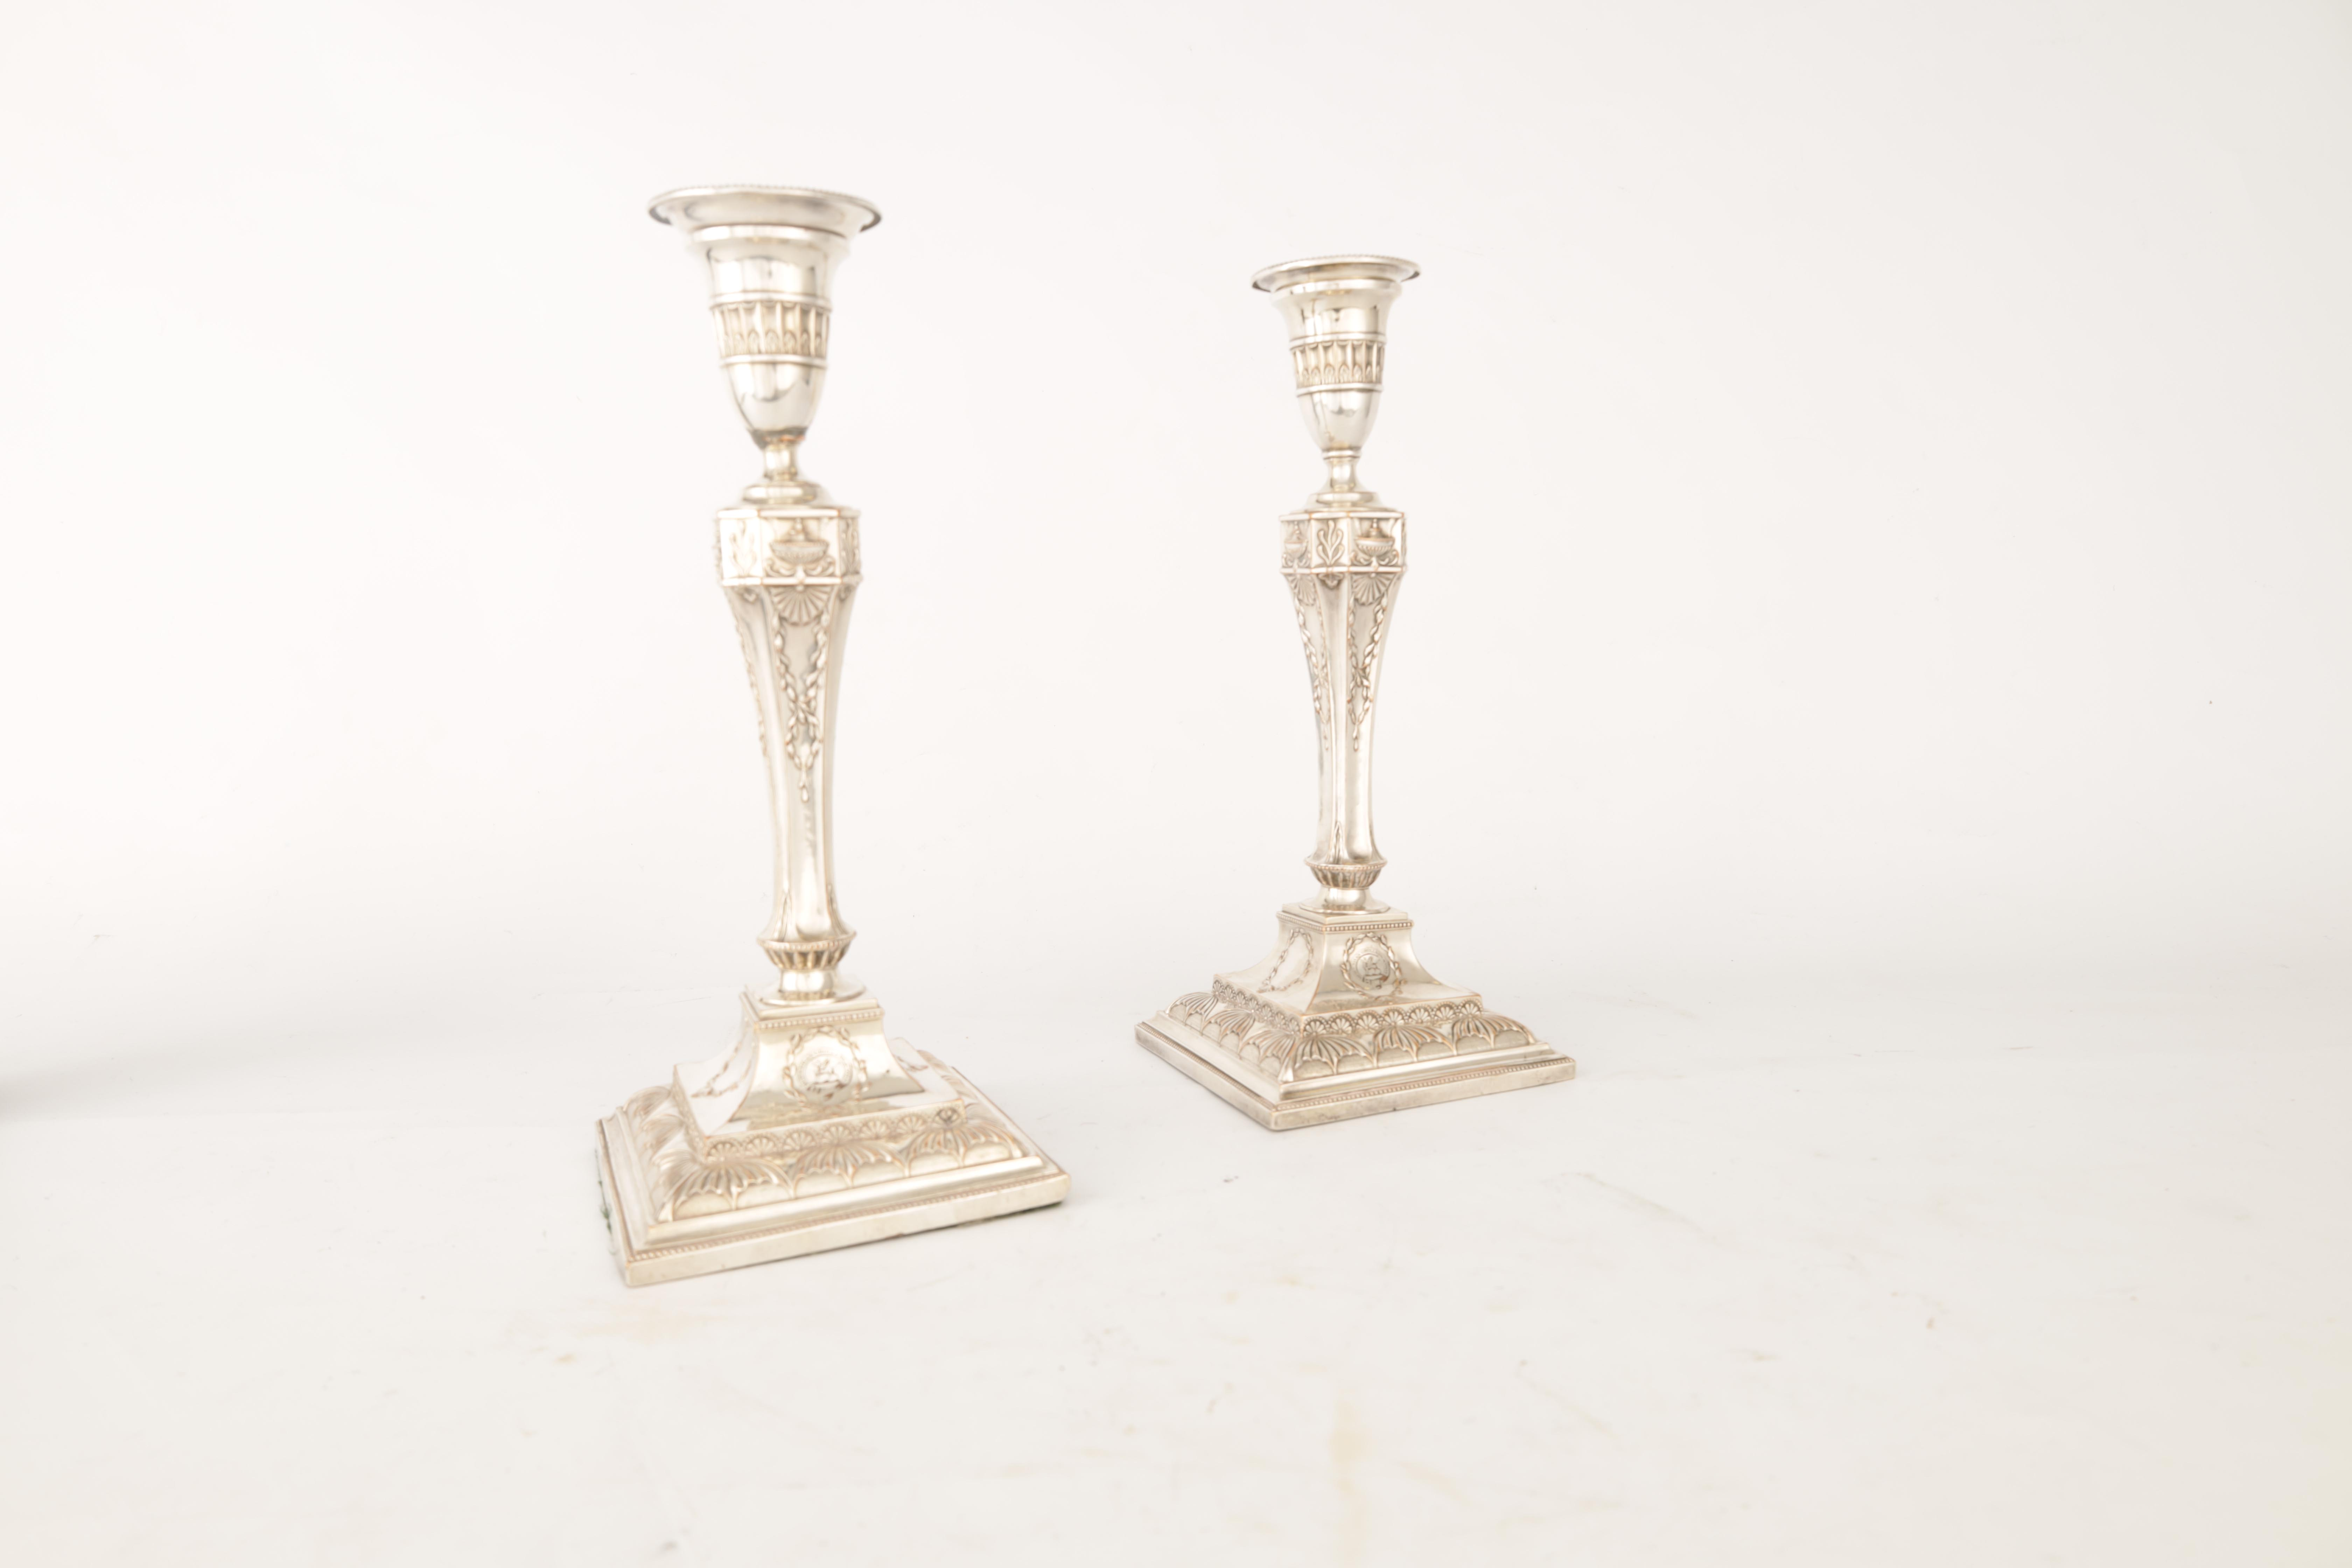 A PAIR OF 19TH CENTURY SHEFFIELD PLATE SILVER ON COPPER ADAM STYLE CANDLESTICKS bearing the crest - Image 3 of 5